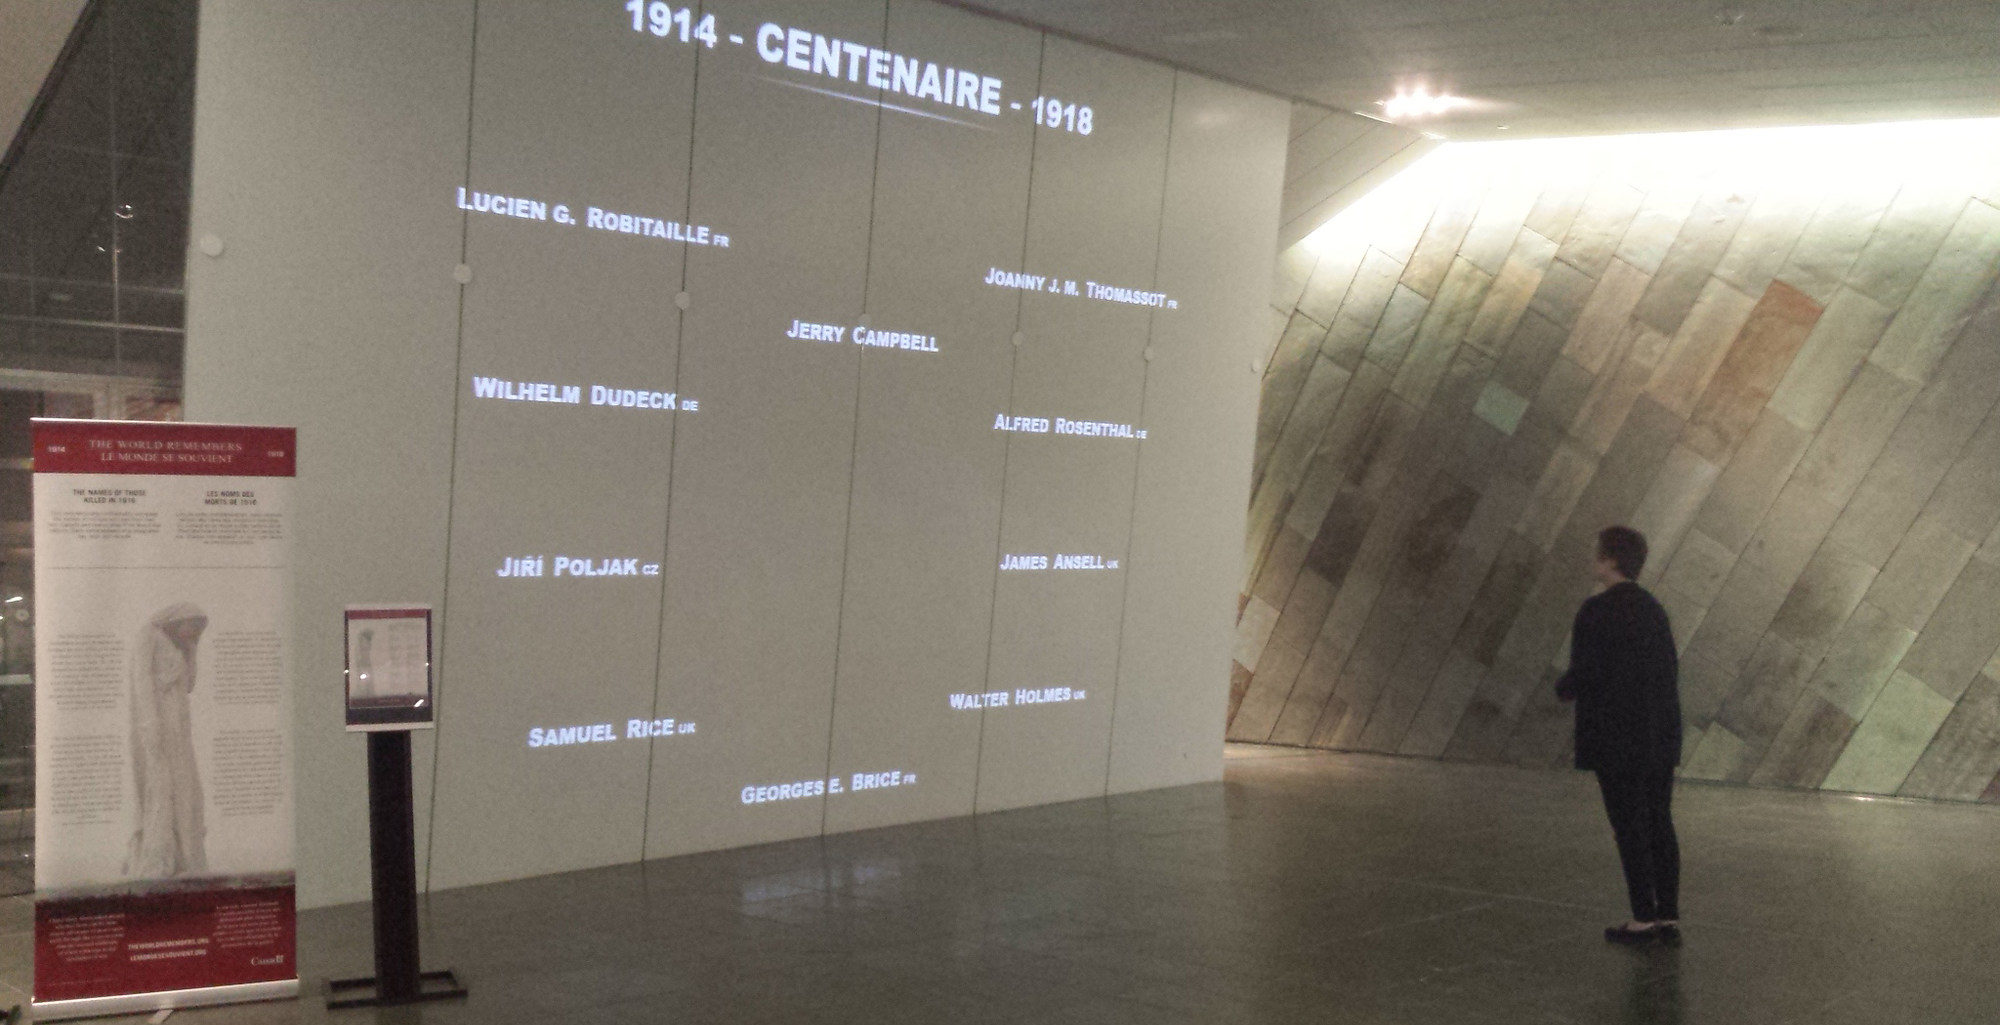 The Canadian War Museum presents The World Remembers (CNW Group/Canadian Museum of History)